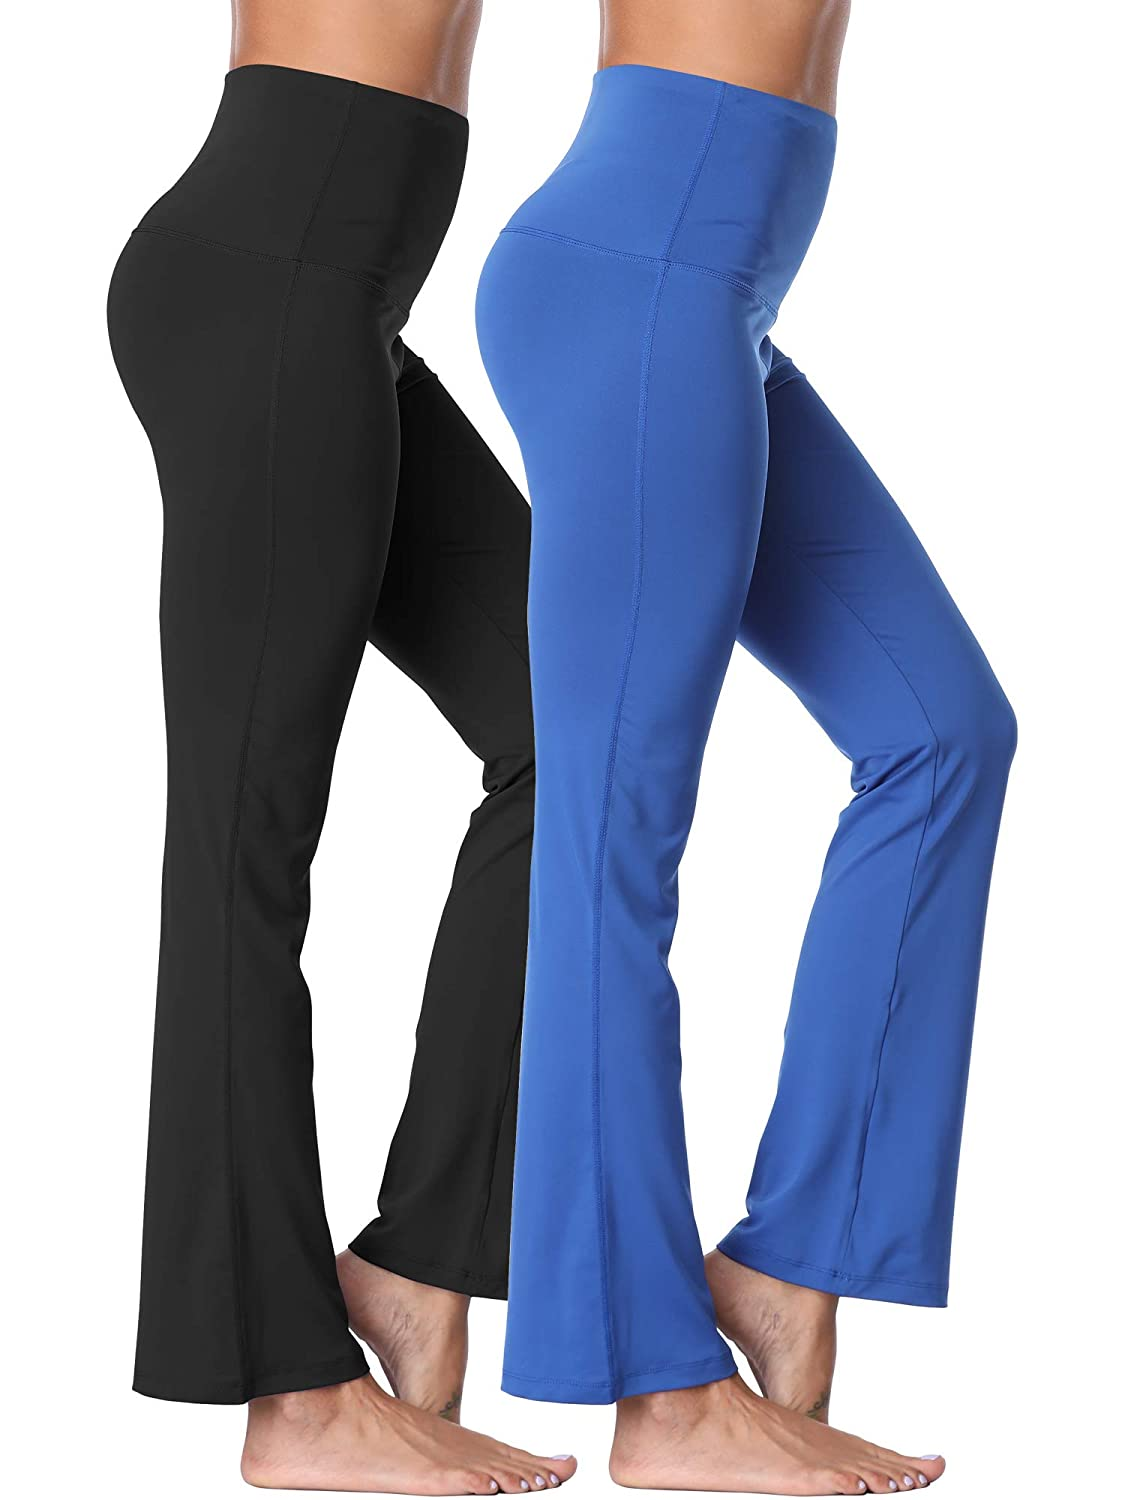 106  Black blueee, 2 Pack XX-Large Neleus High Waist Running Workout Leggings for Yoga with Pockets